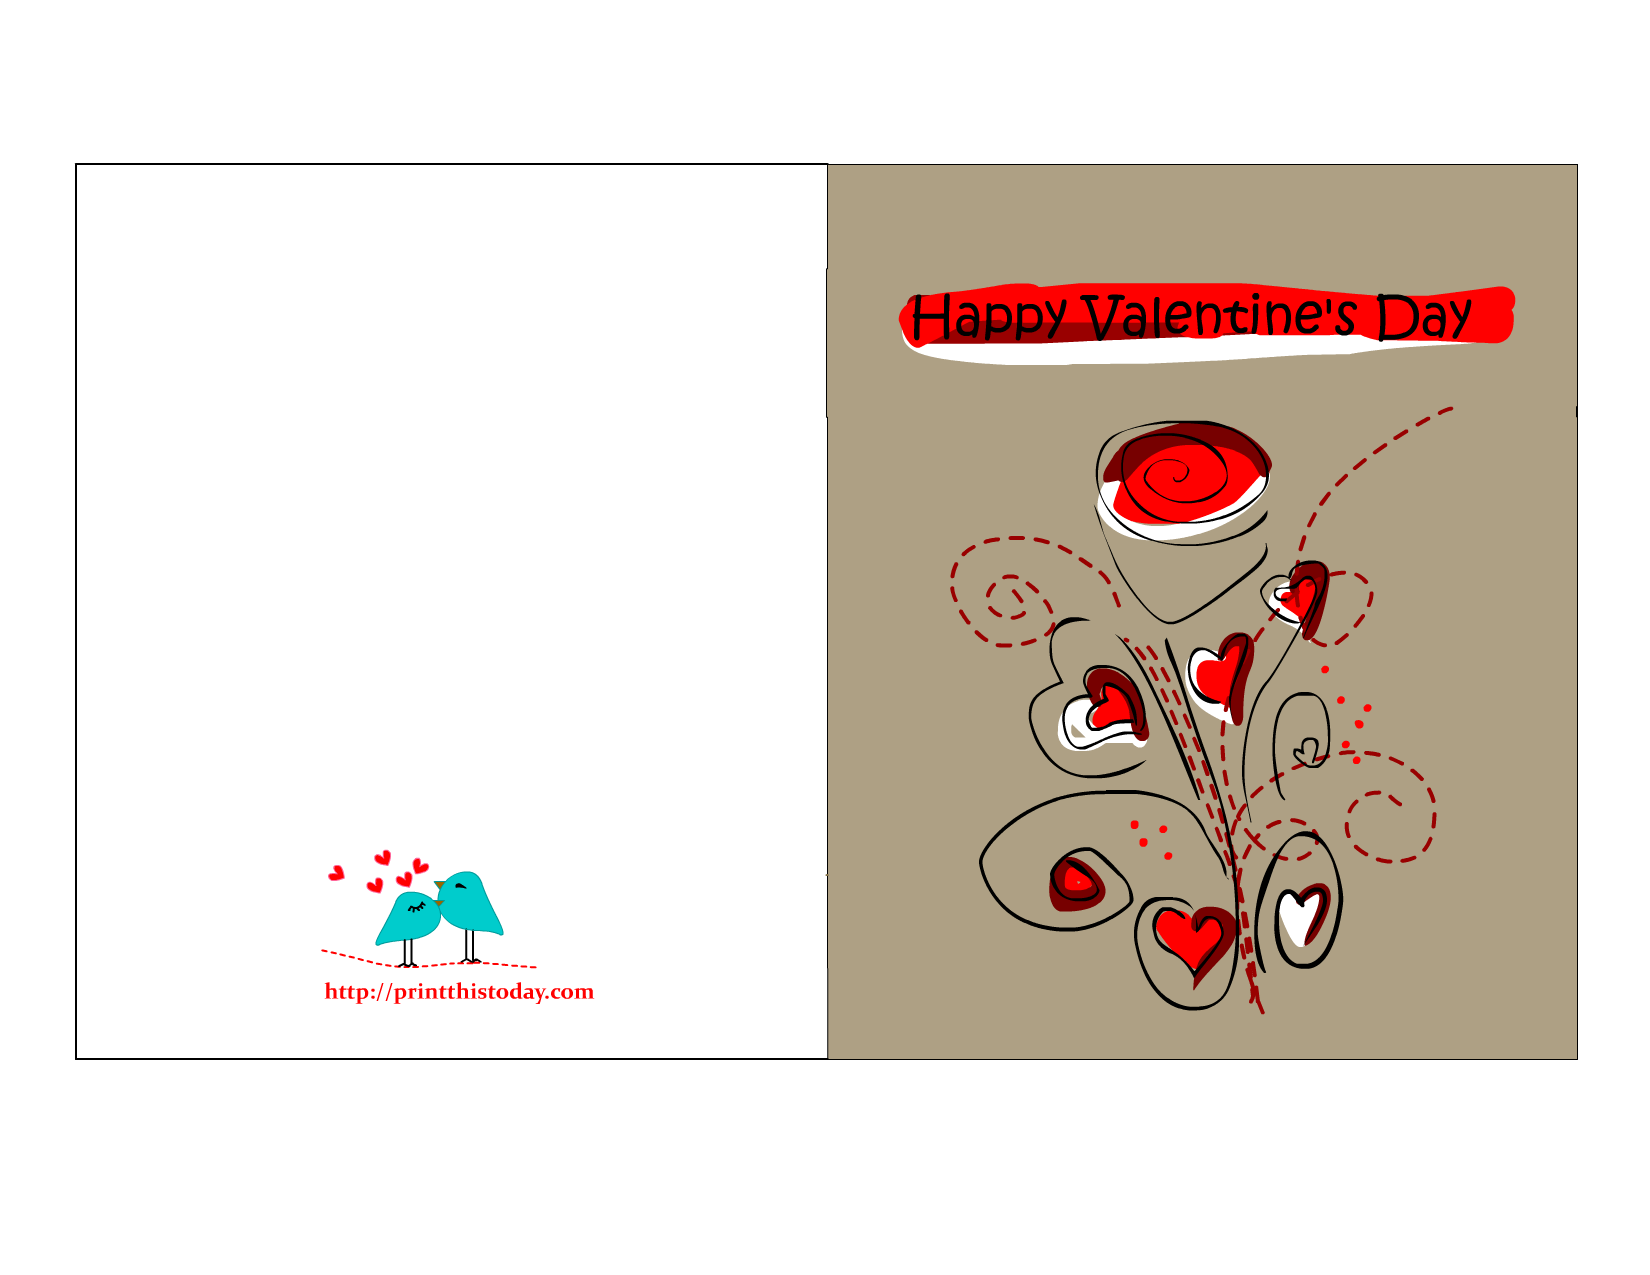 Coupon clipart valentines day. Valentine cards to print